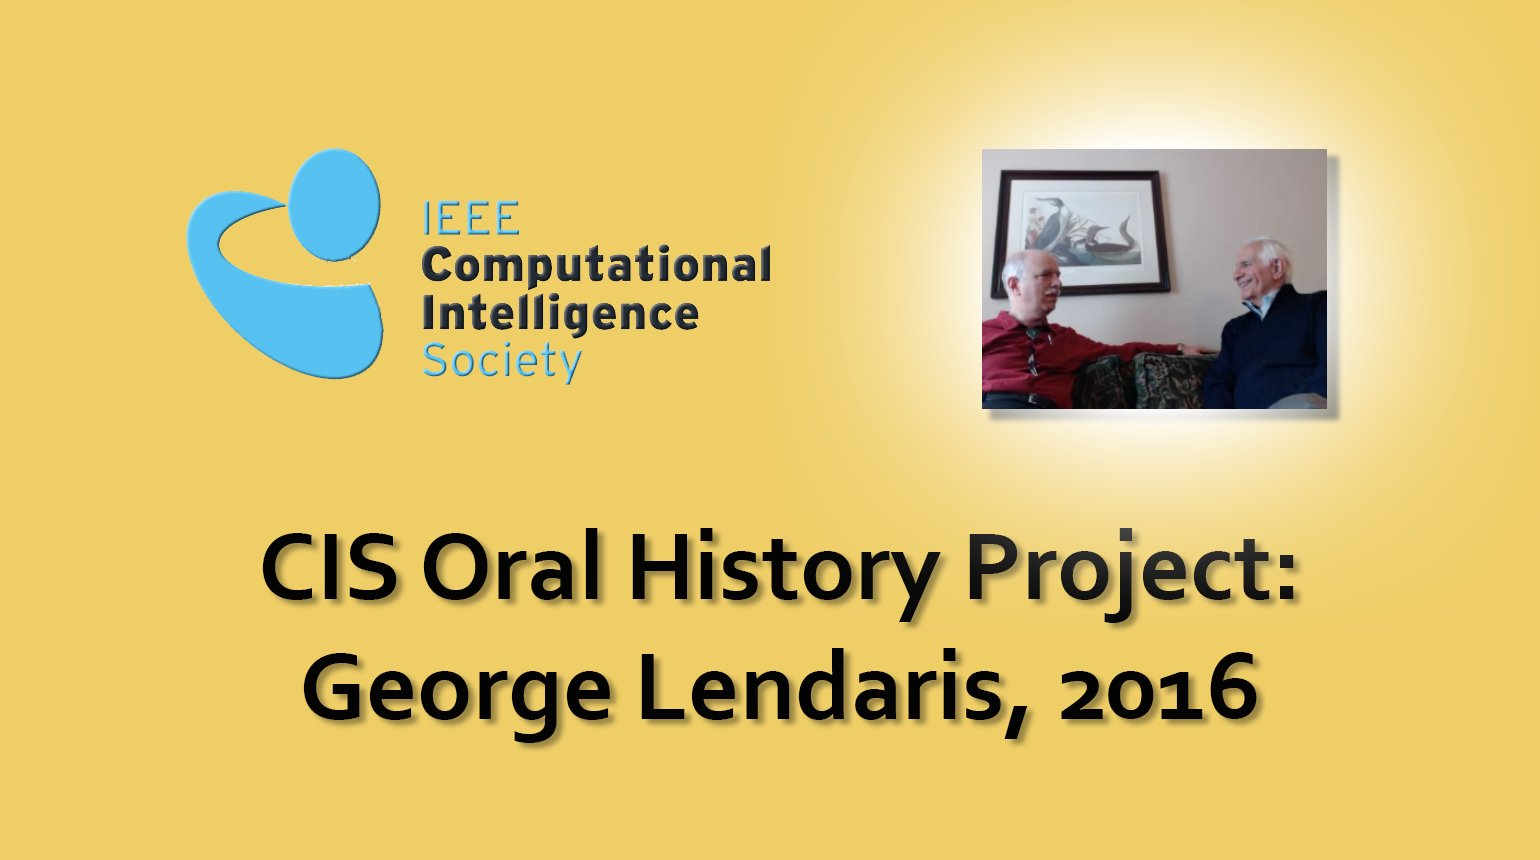 Interview with George Lendaris, 2016: CIS Oral History Project